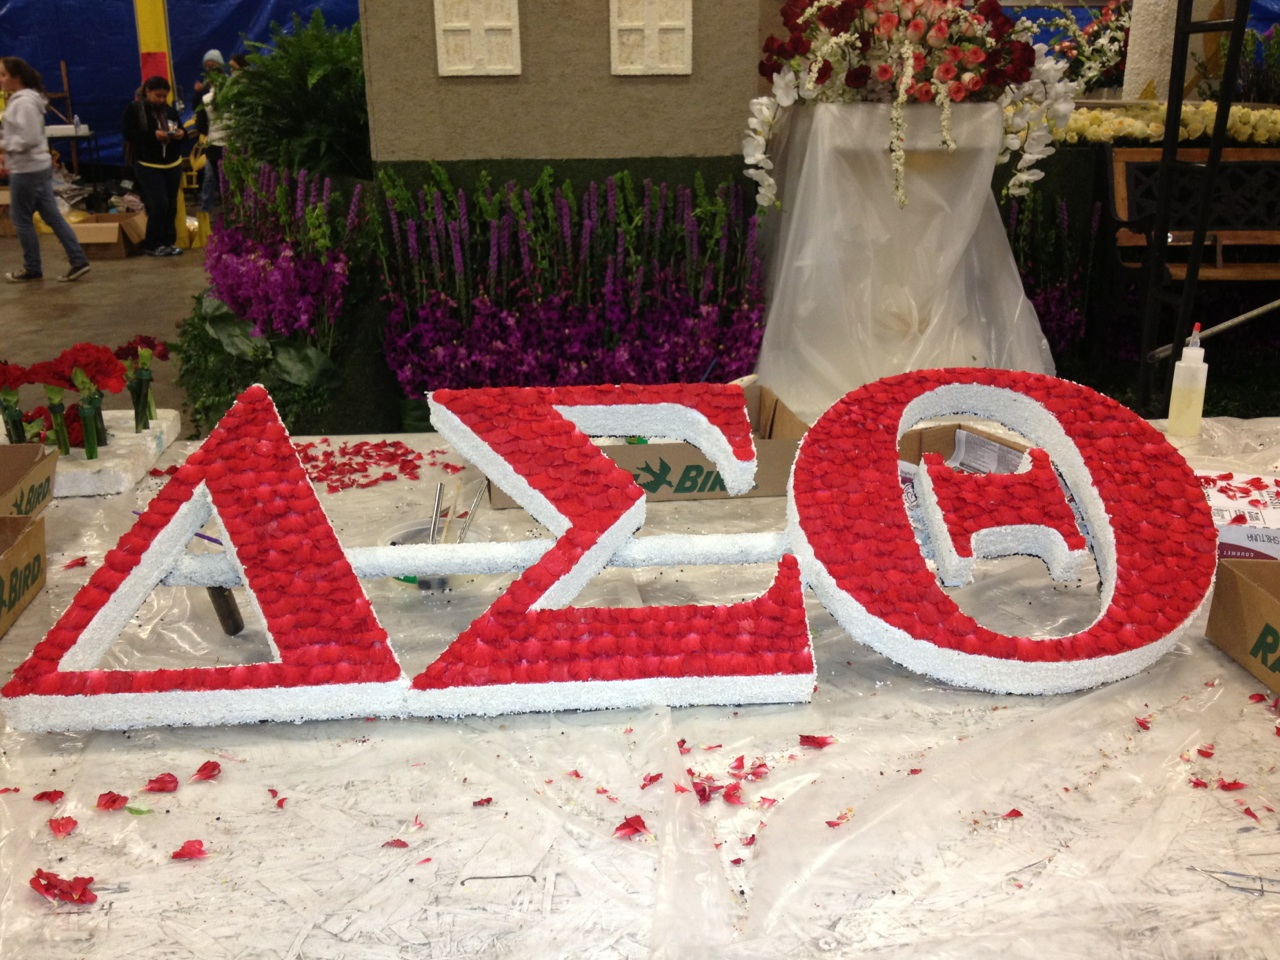 Delta sigma theta reach wingspan pasadena cabuilding the delta sigma theta sorority incorporated tournament of roses float photo credit gail bowens buycottarizona Choice Image